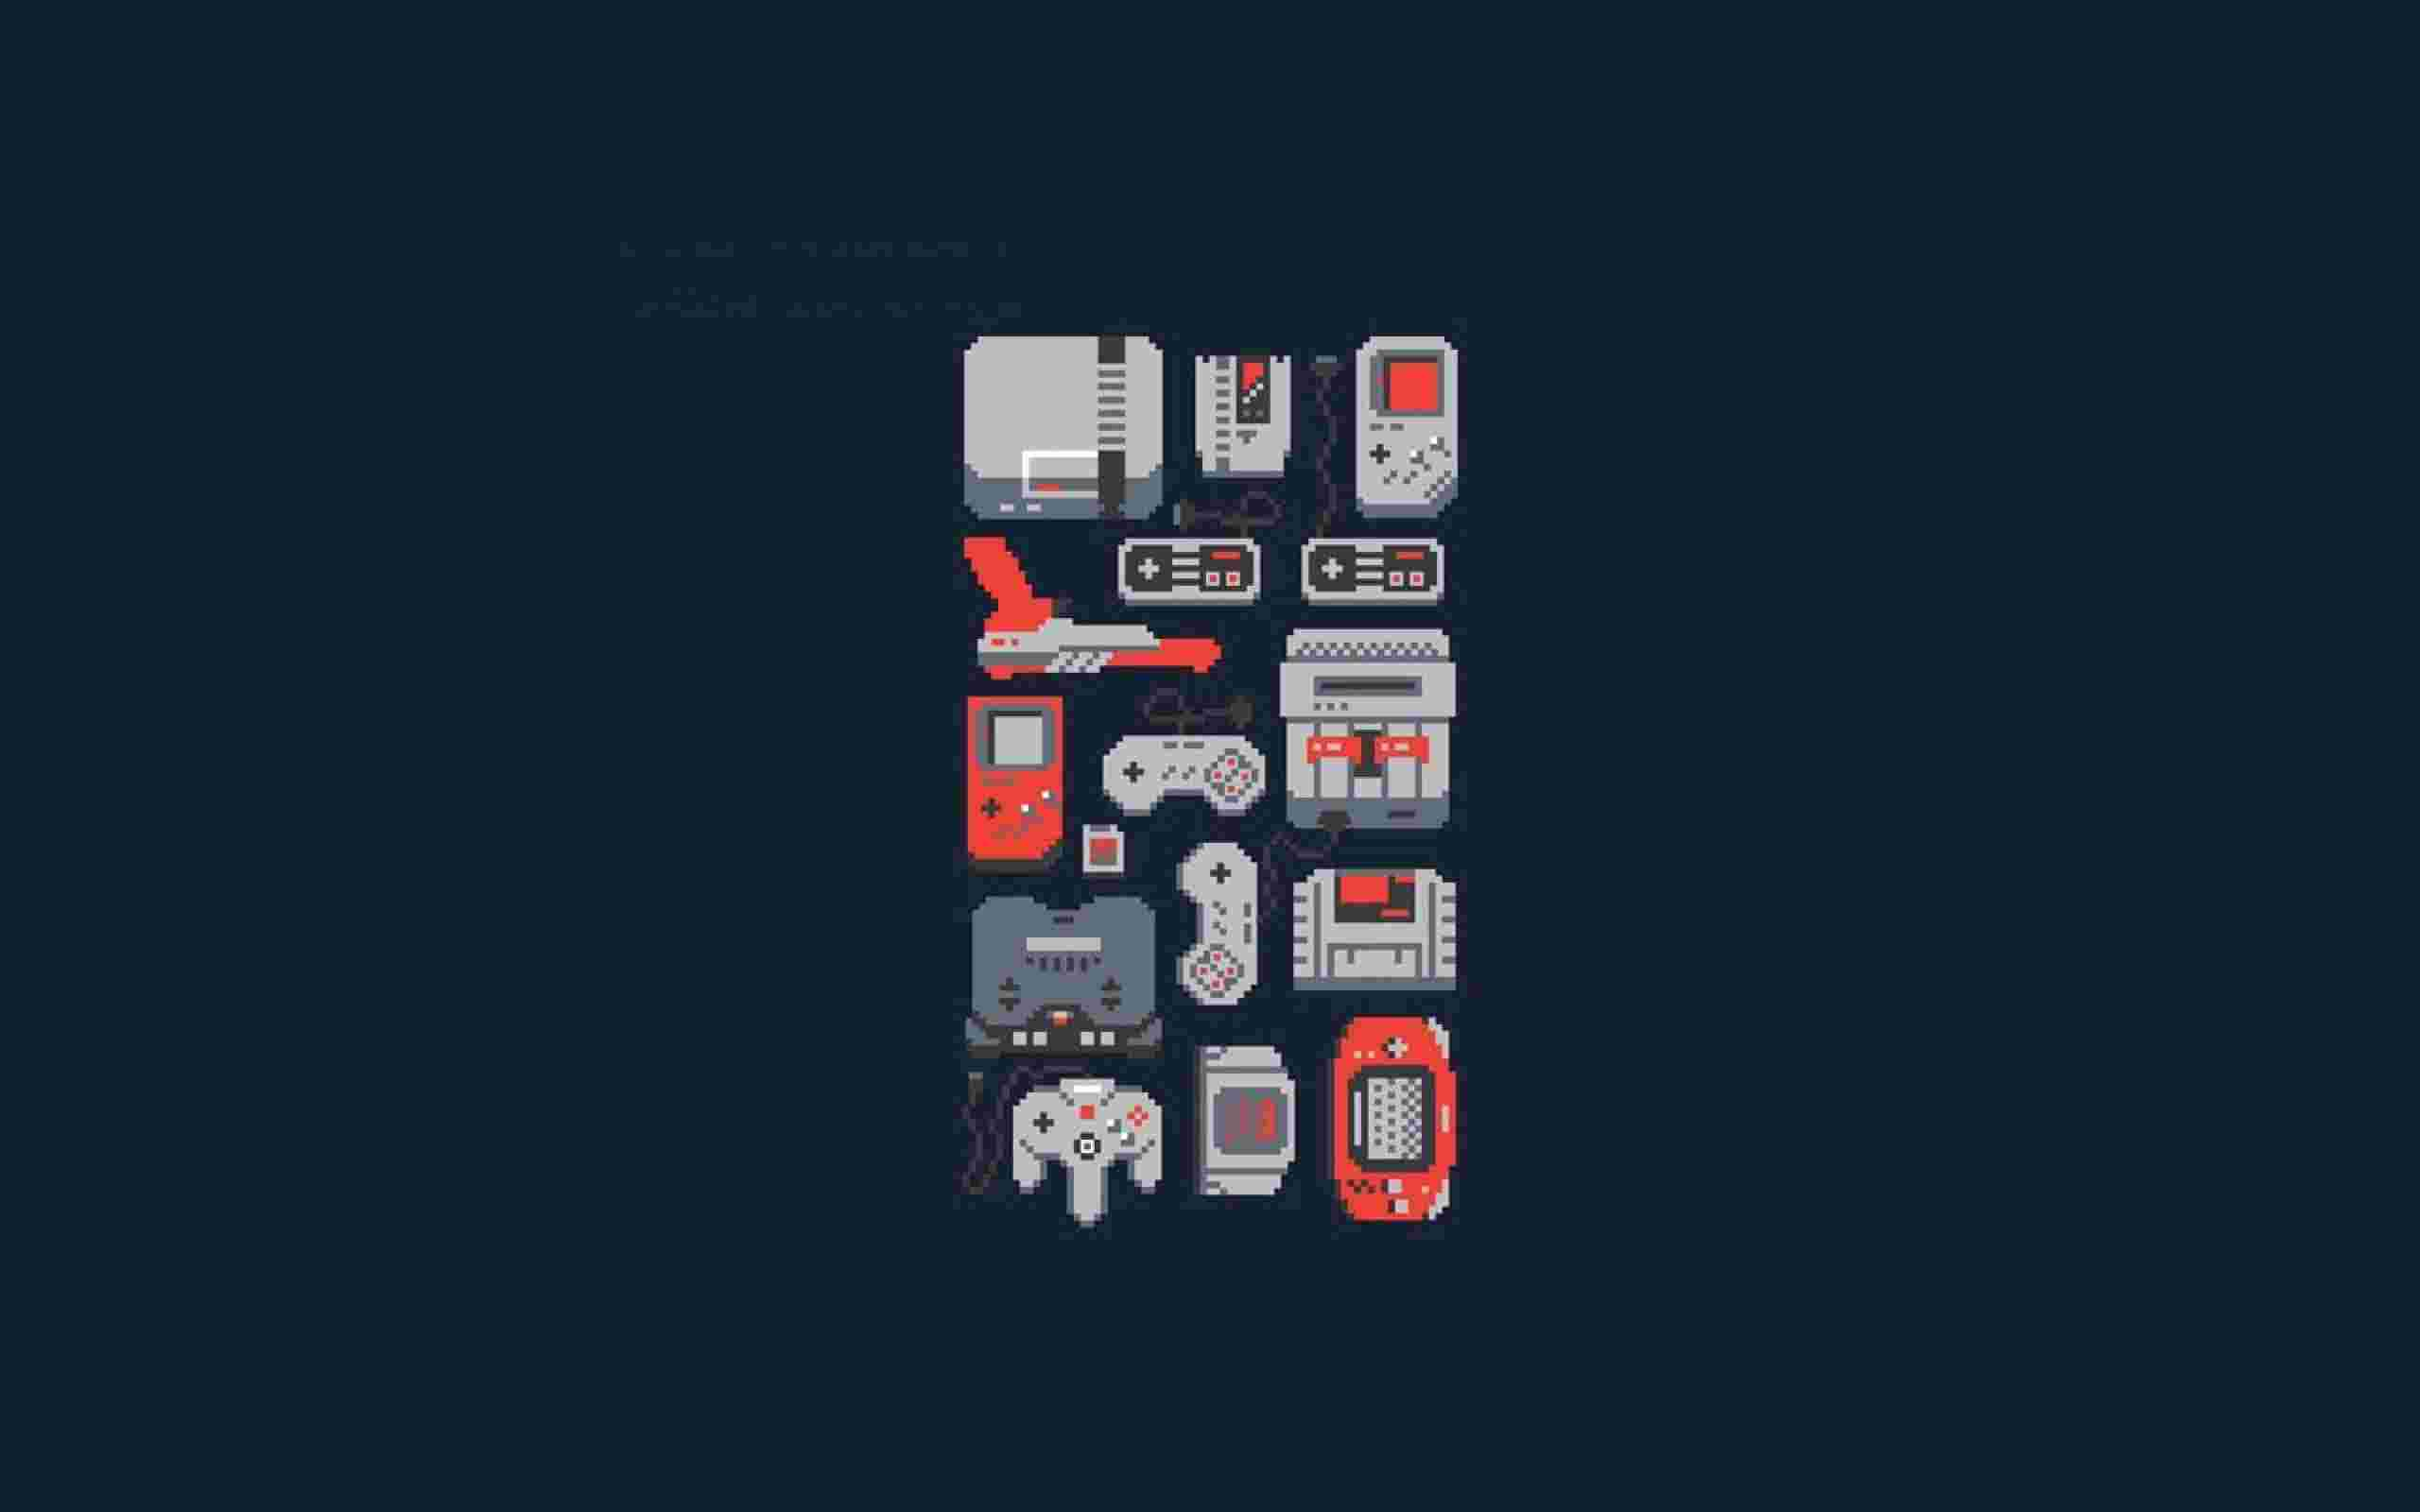 oldschool_retro_games_nes_8bit_2560x1600_wallpapername.com